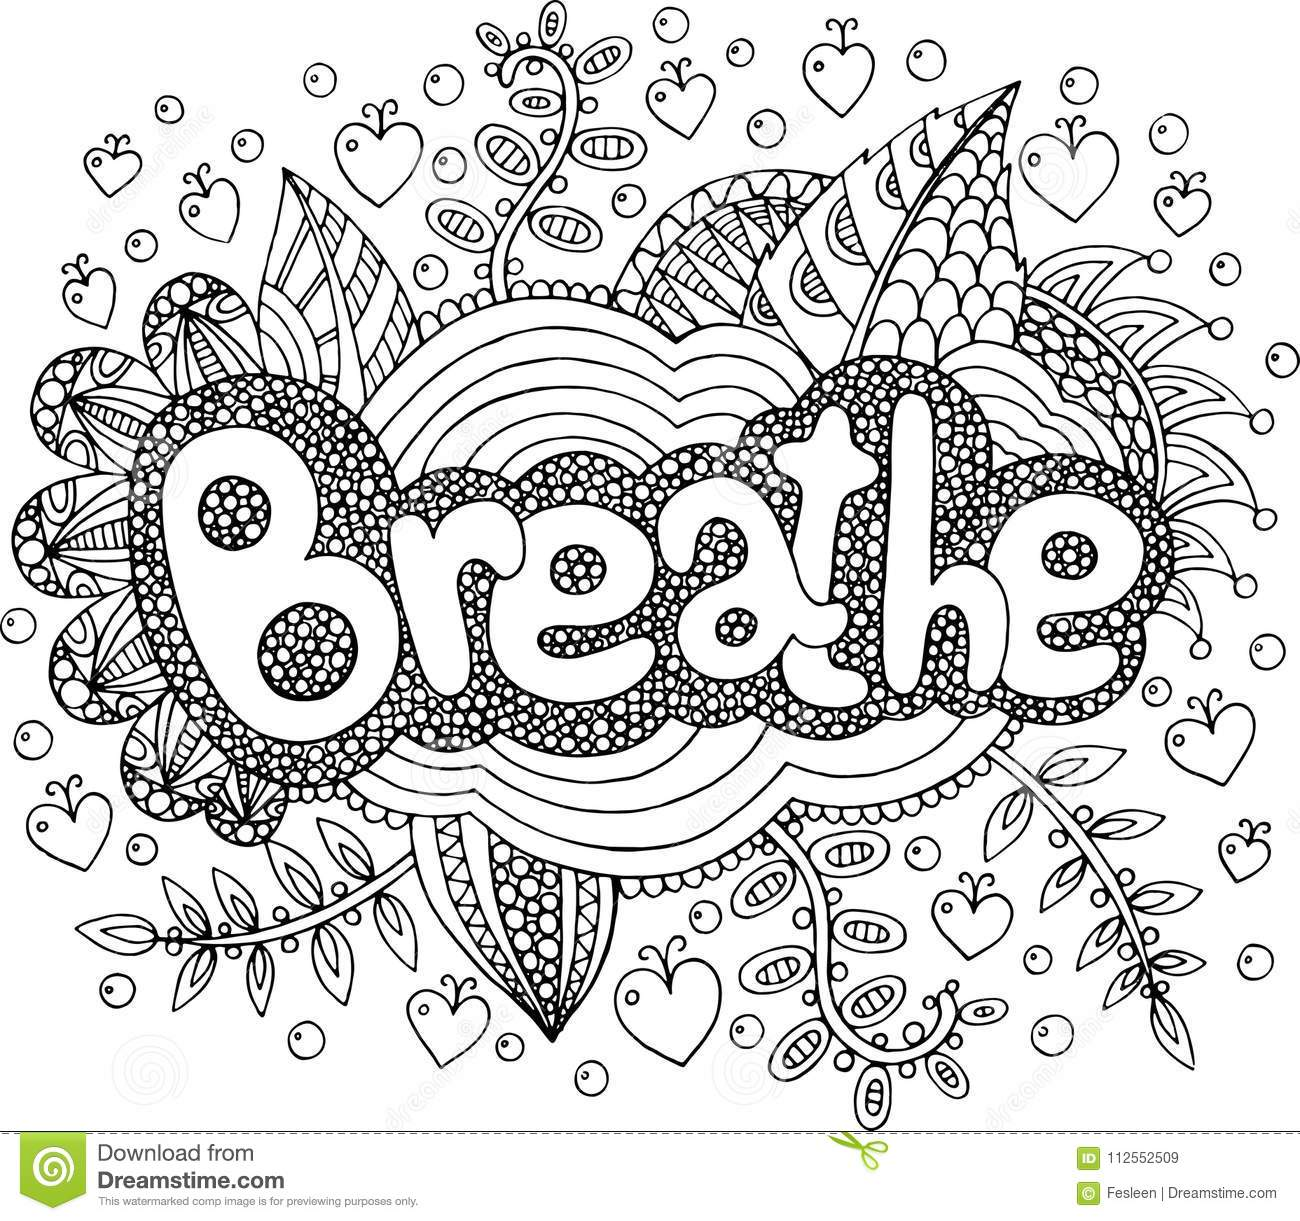 Coloring Page For Adults With Mandala And Breathe Word. Doodle L ...